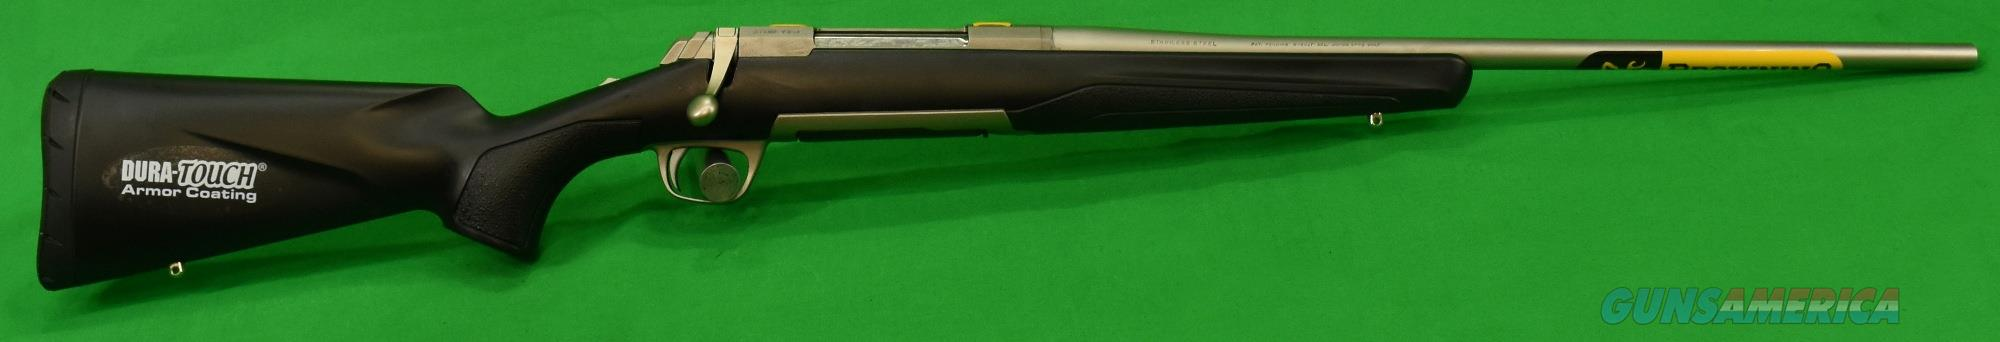 Xbolt Stainless Stalker 30-06Spfld 22In 035202226  Guns > Rifles > Browning Rifles > Bolt Action > Hunting > Stainless